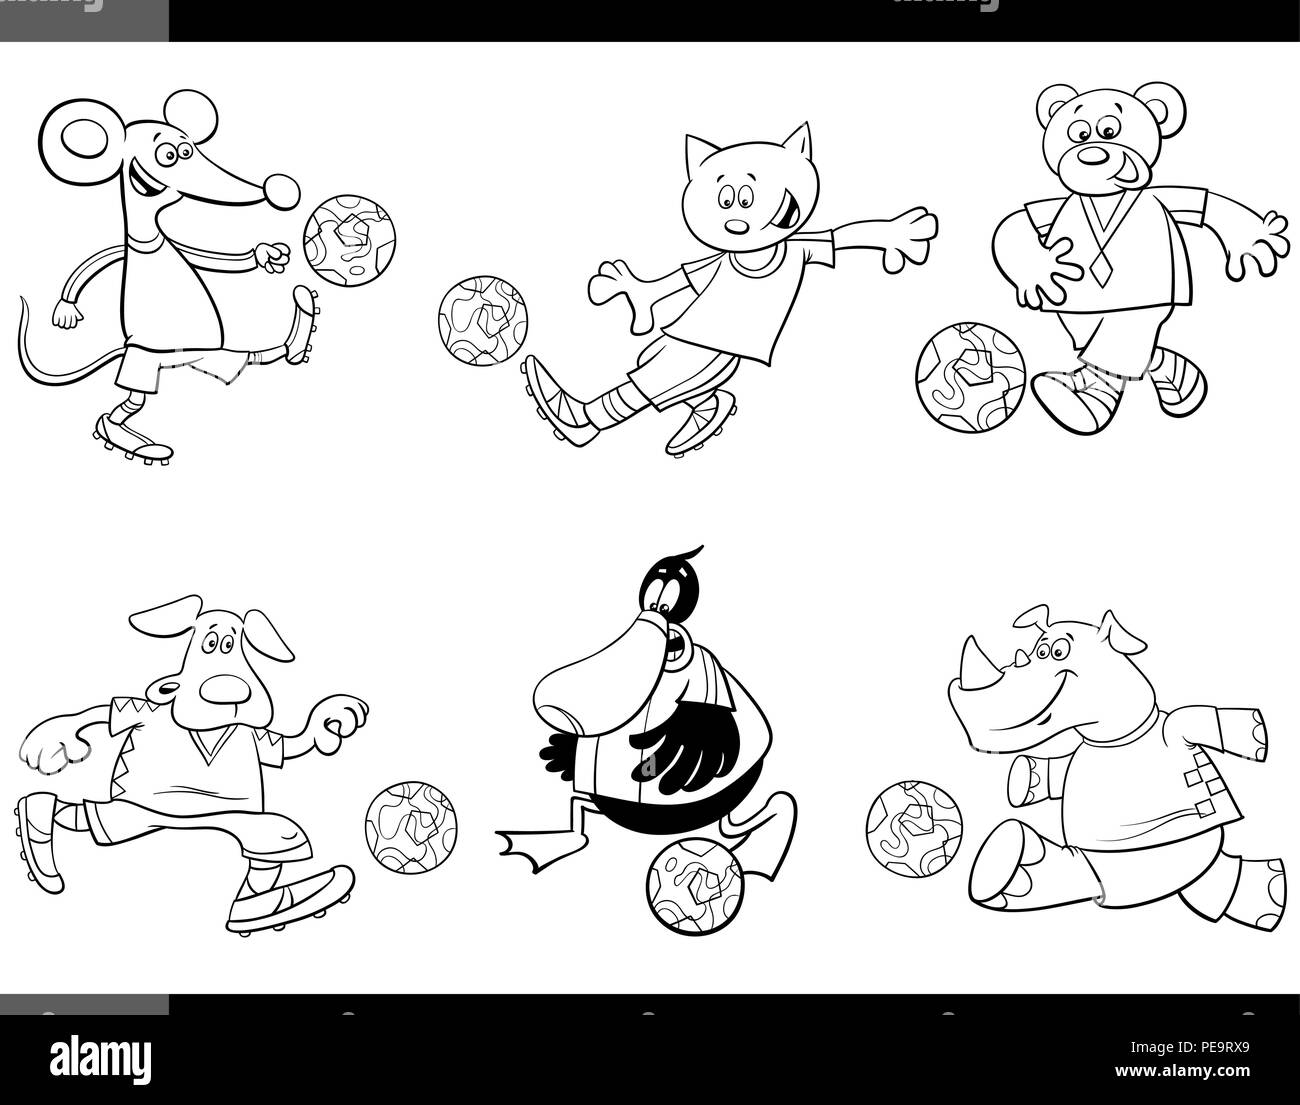 Black and White Cartoon Illustrations of Animal Football or Soccer Player Characters with Balls Coloring Page - Stock Vector